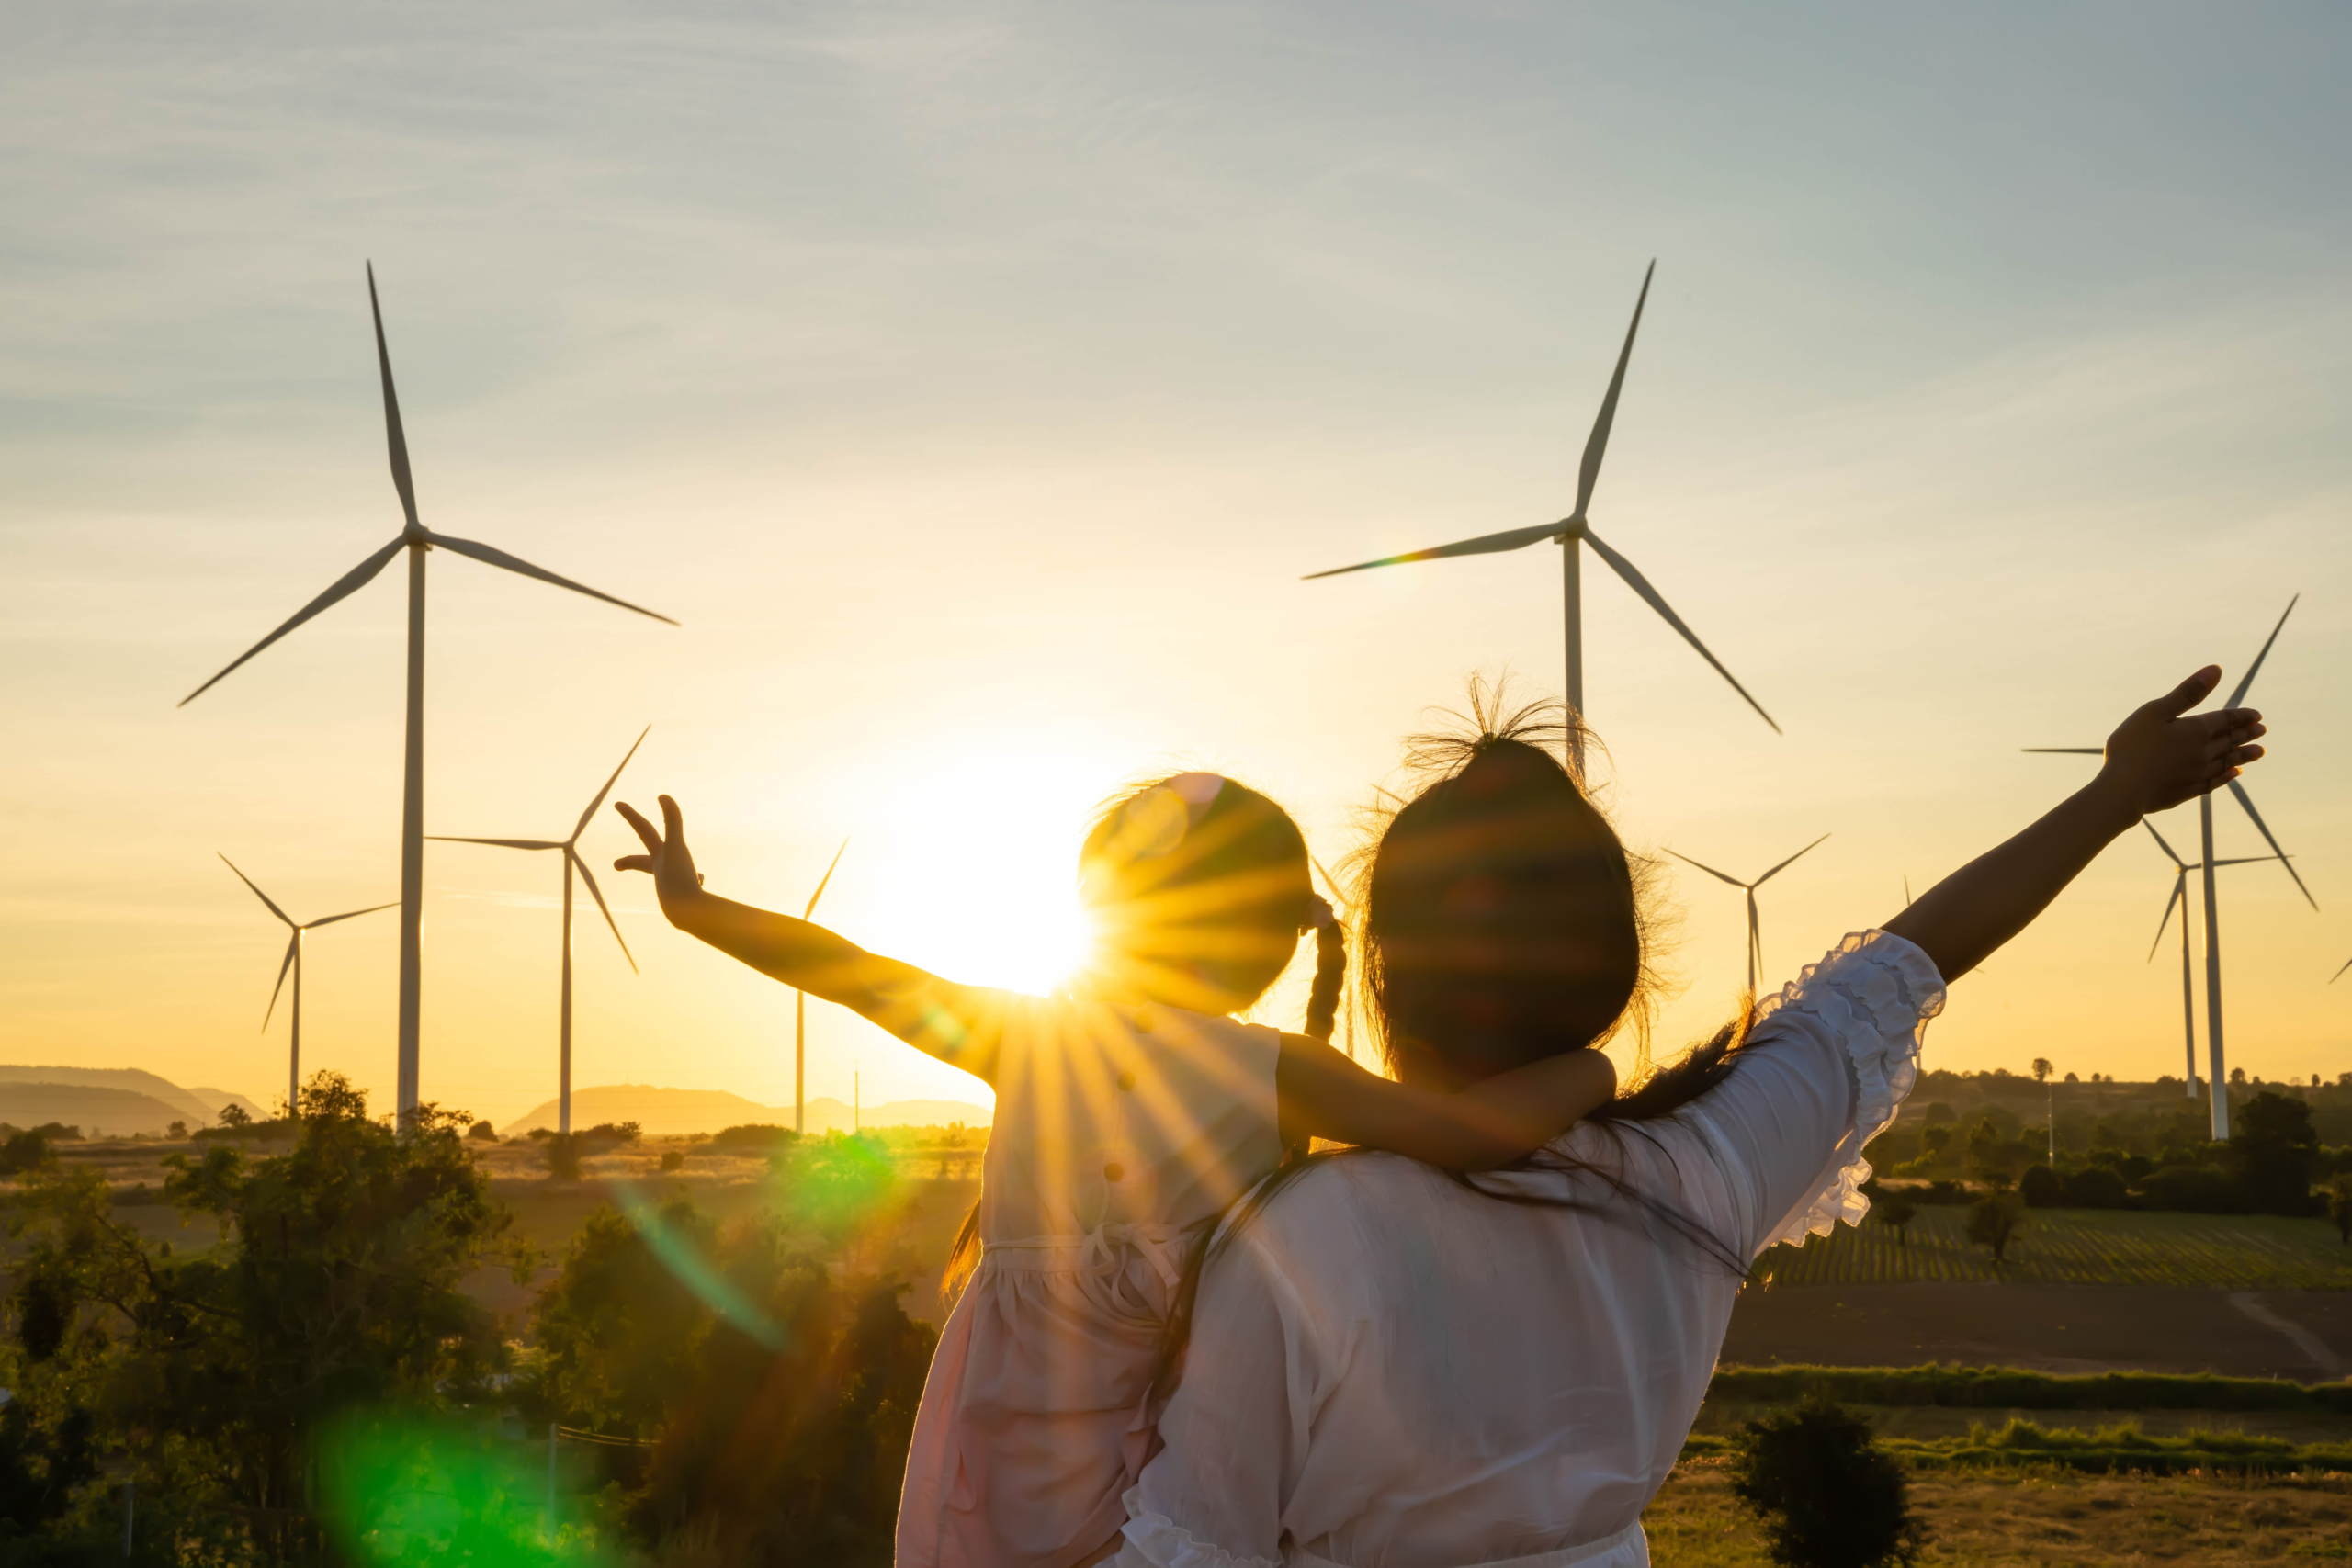 Woman holds child, both look out at sunset against wind turbines, holding hands out with joy.